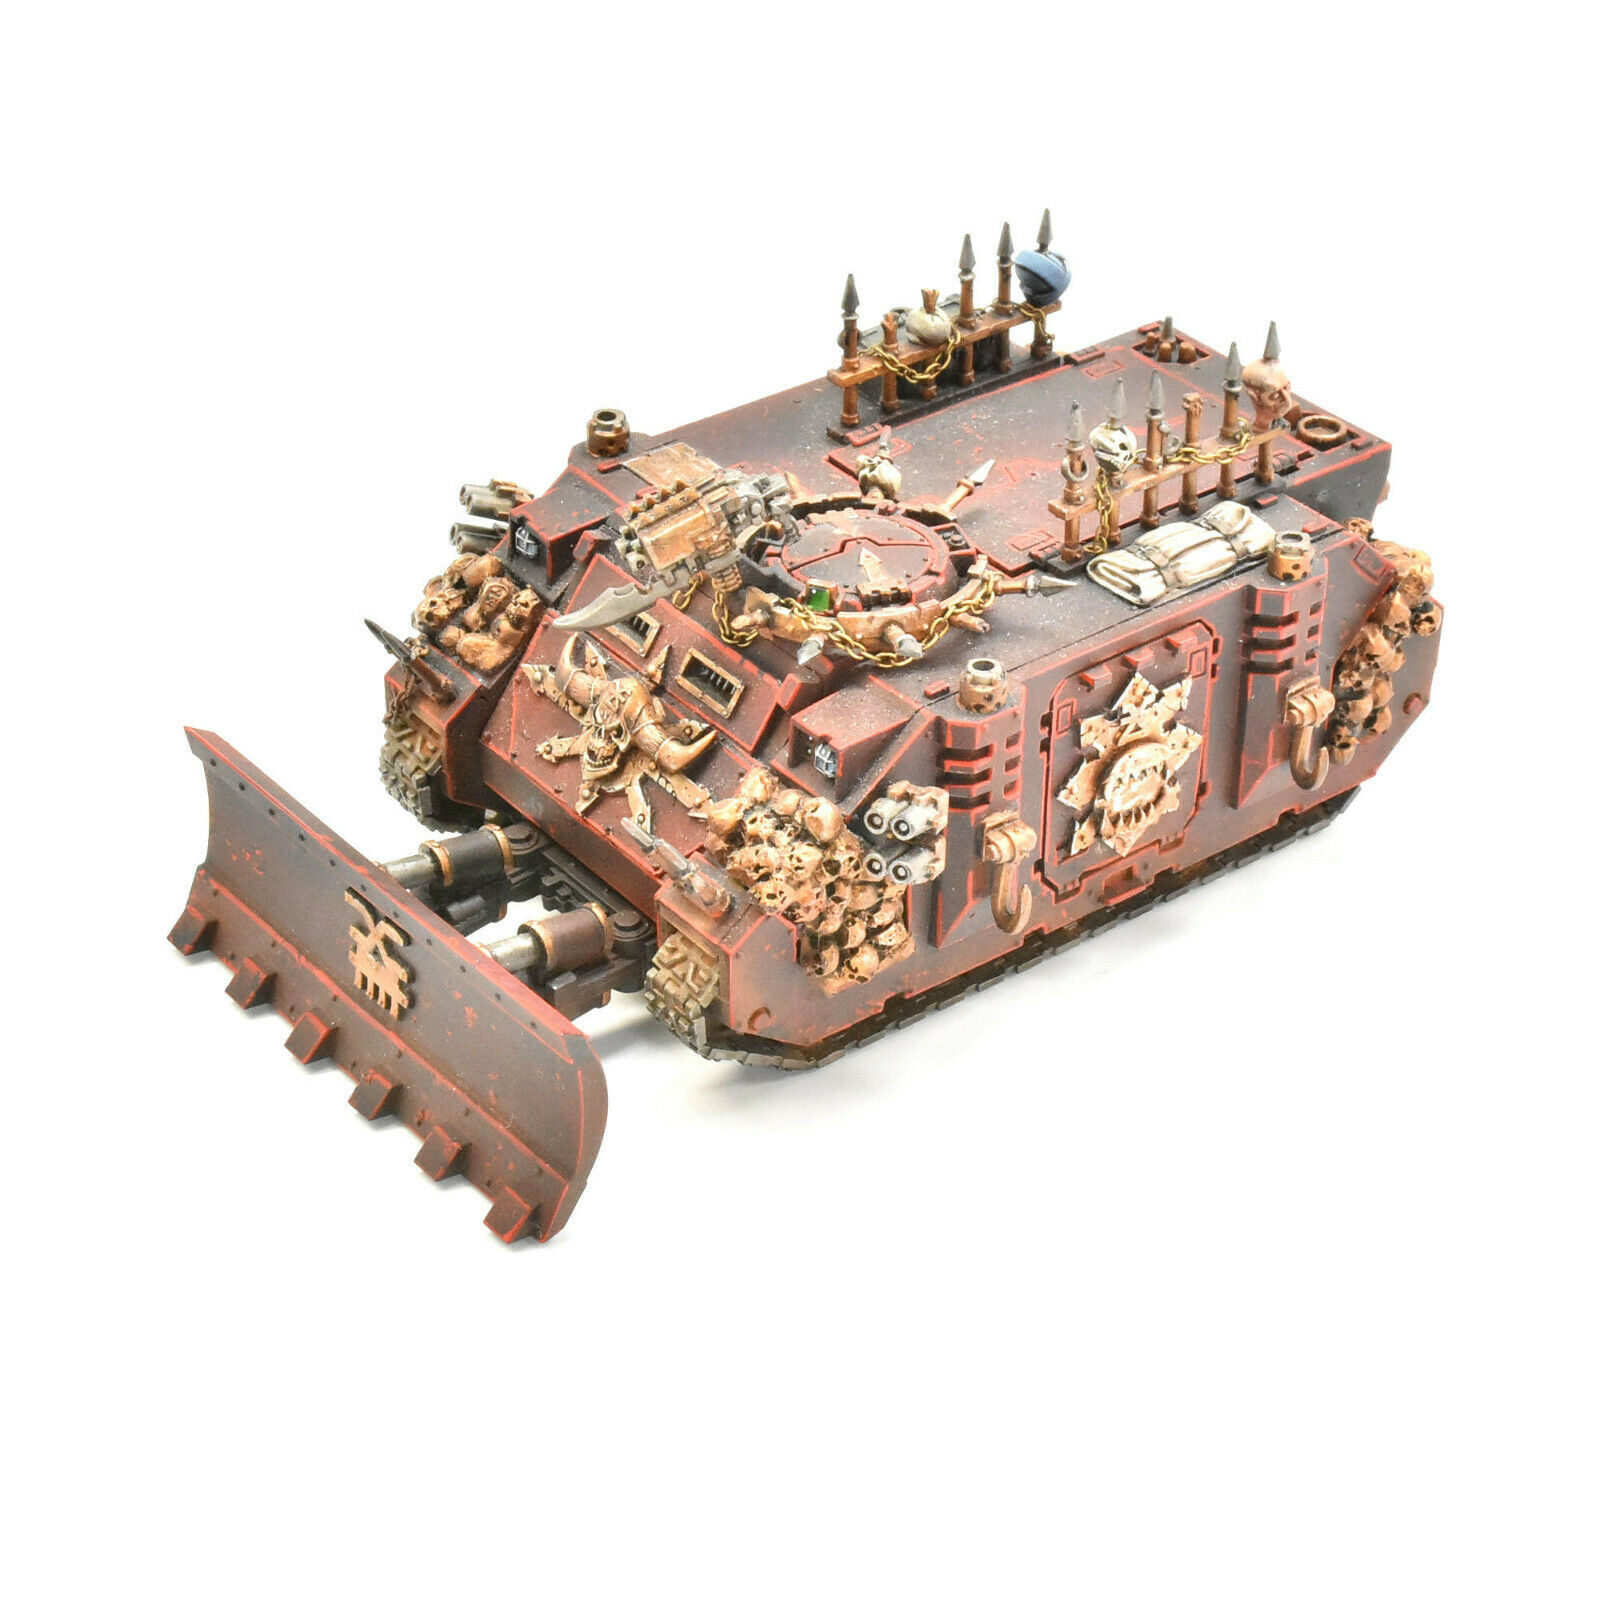 CHAOS SPACE MARINES rhino tank PRO PAINTED PAINTED PAINTED